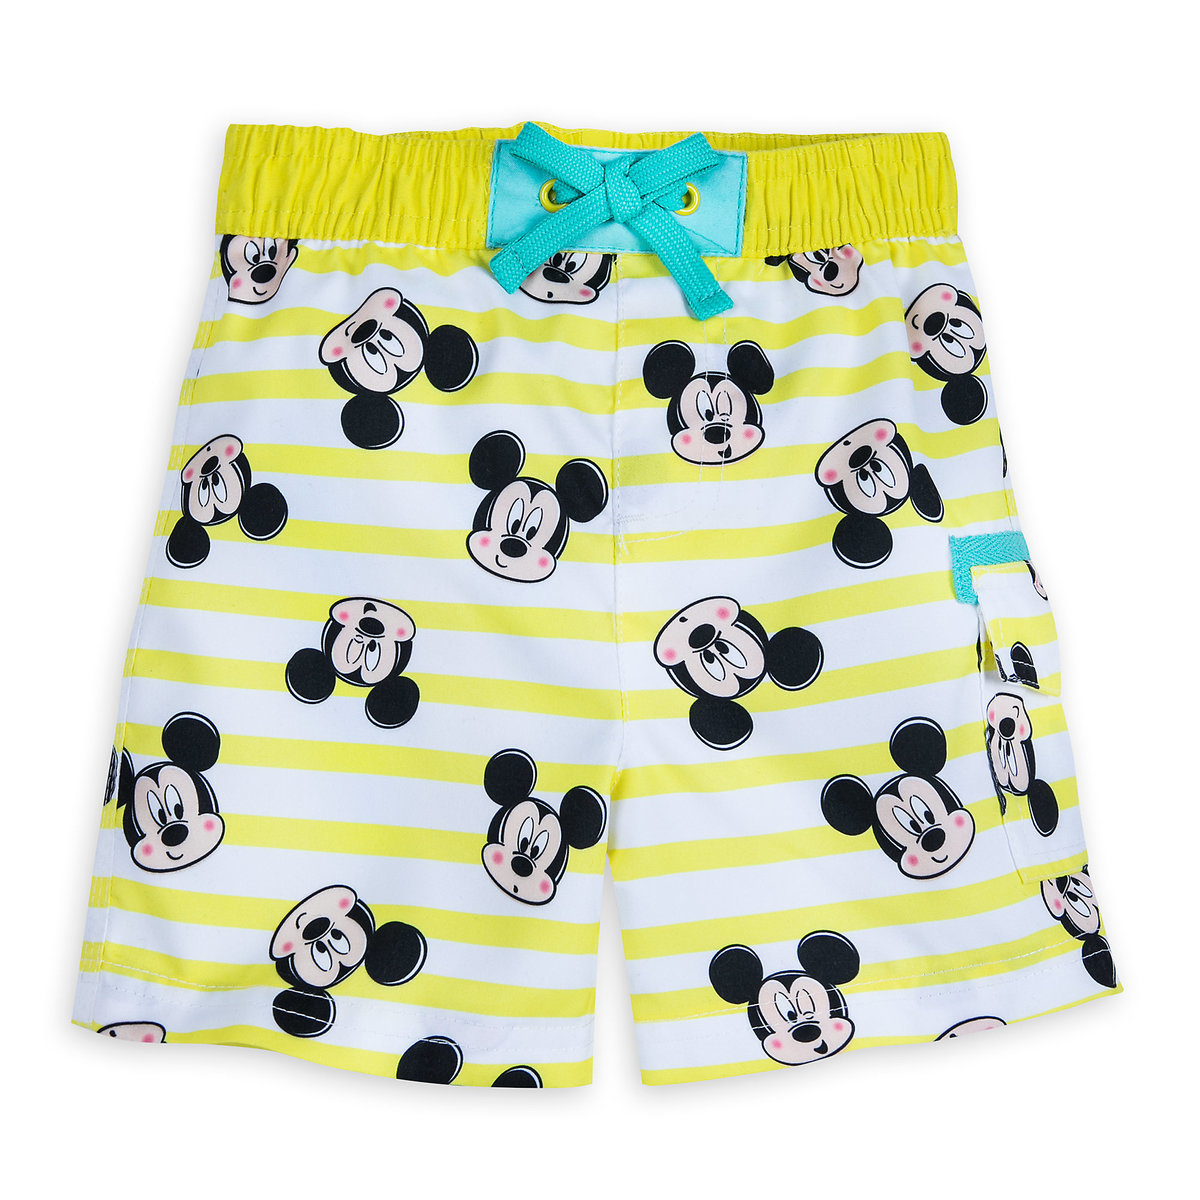 c892471980 Product Image of Mickey Mouse Striped Swim Trunks for Baby # 1